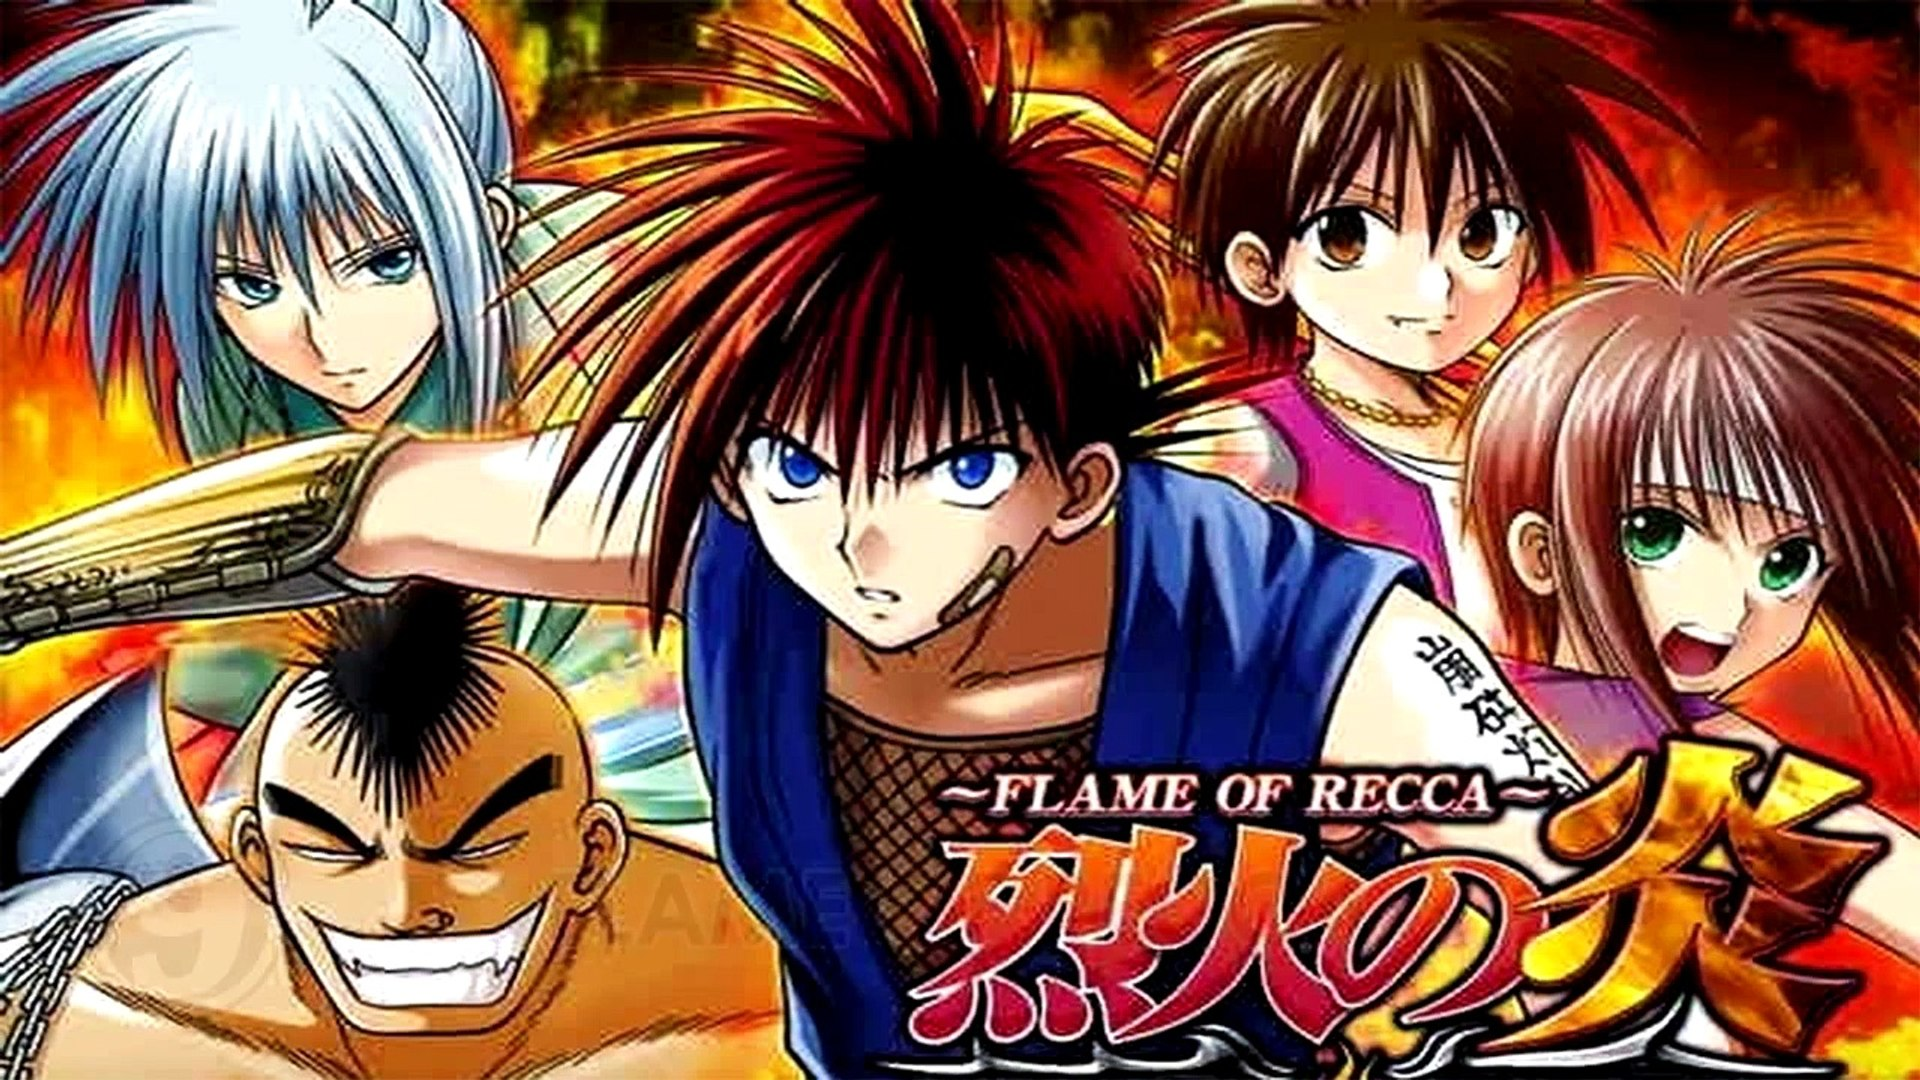 TOP 10 Animes That Made Me Start Watching Japanese Animation